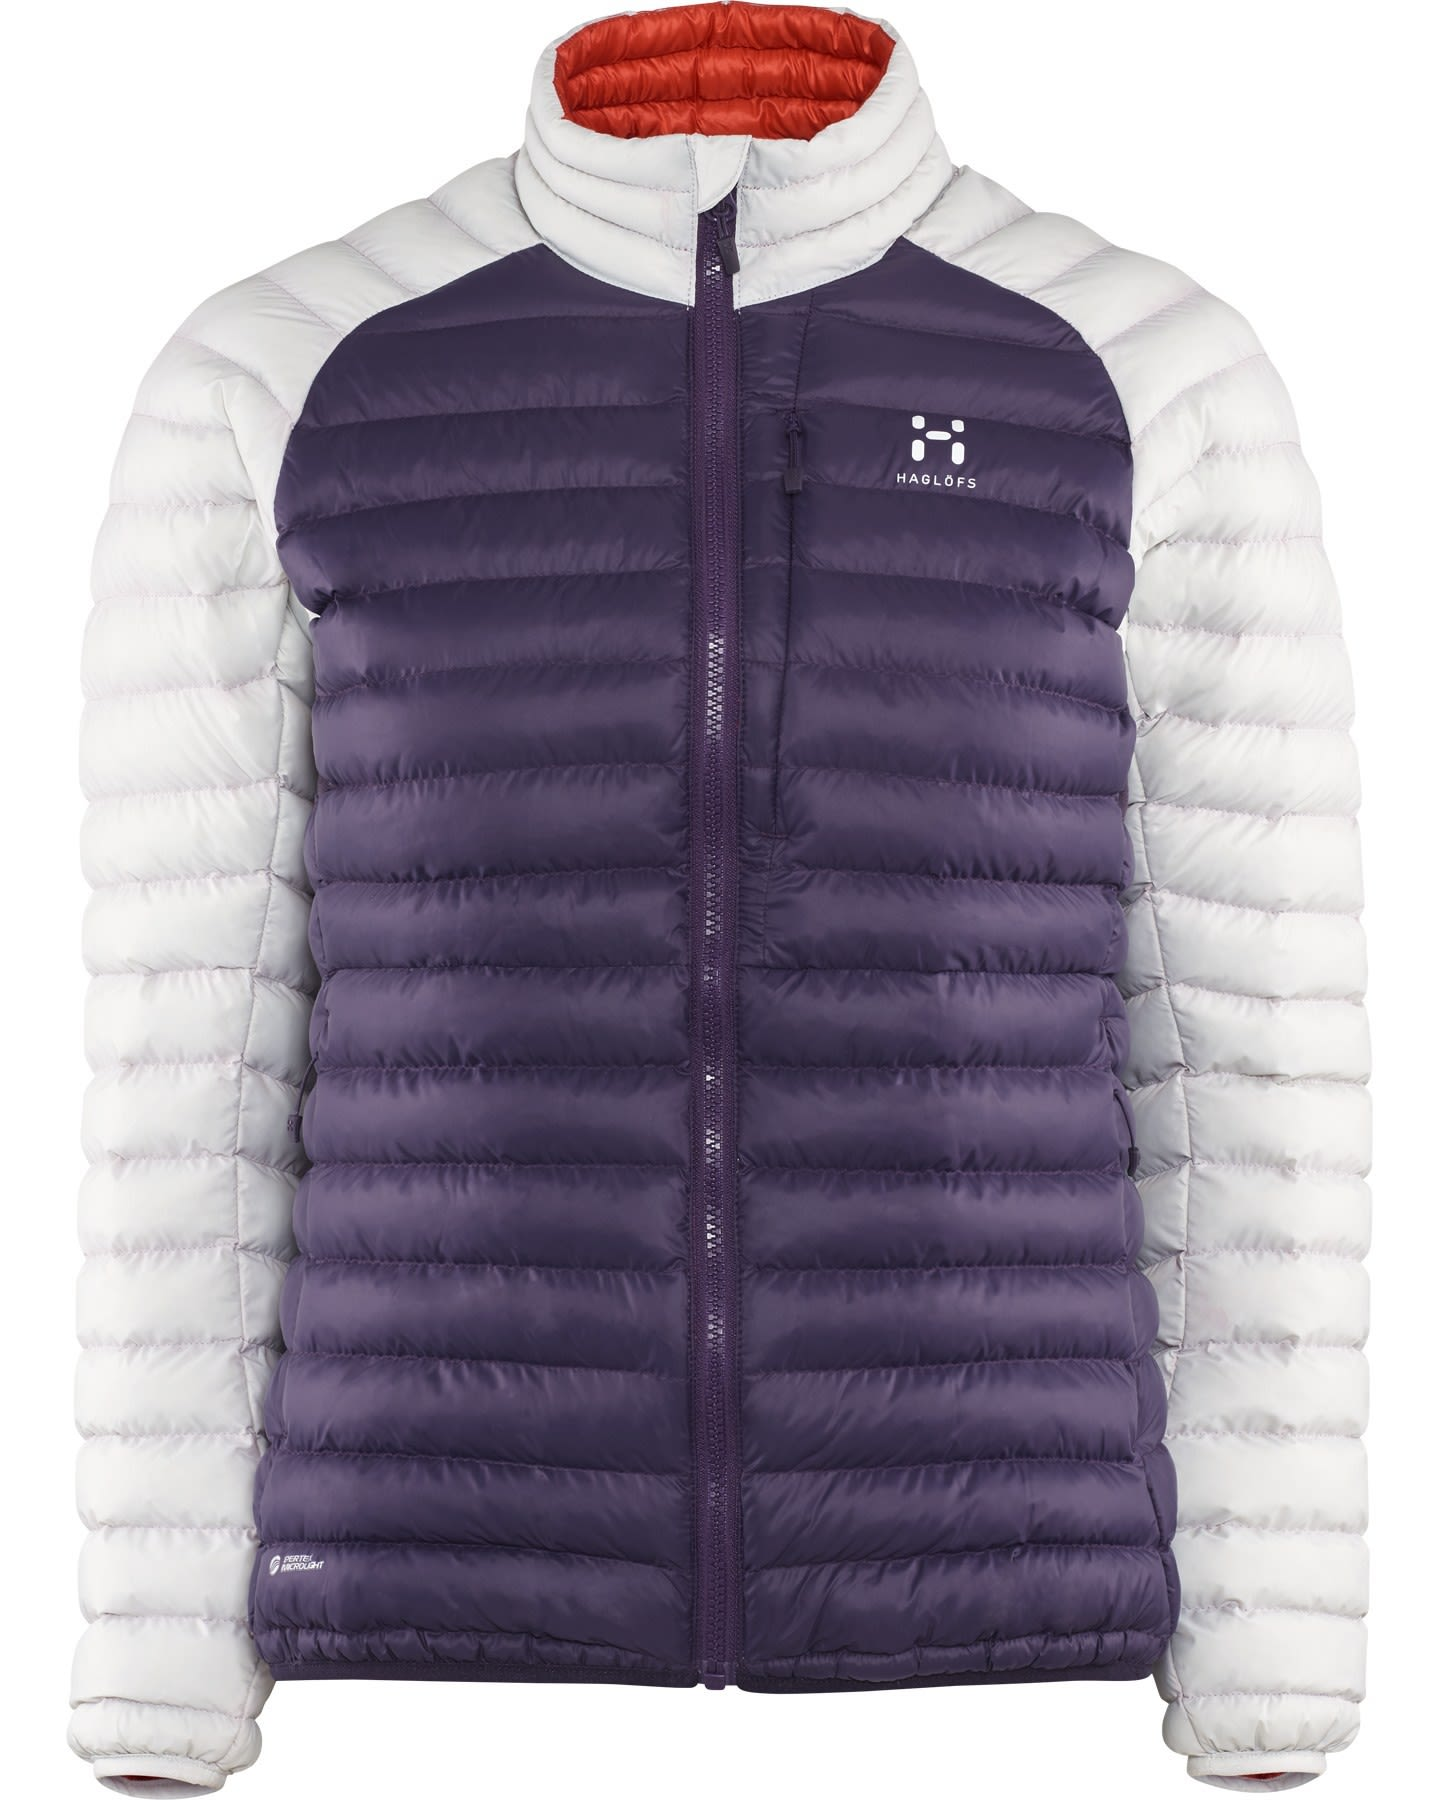 Haglöfs Essens Mimic Jacket (Modell Winter 2018) Weiß, Female Daunen Freizeitj